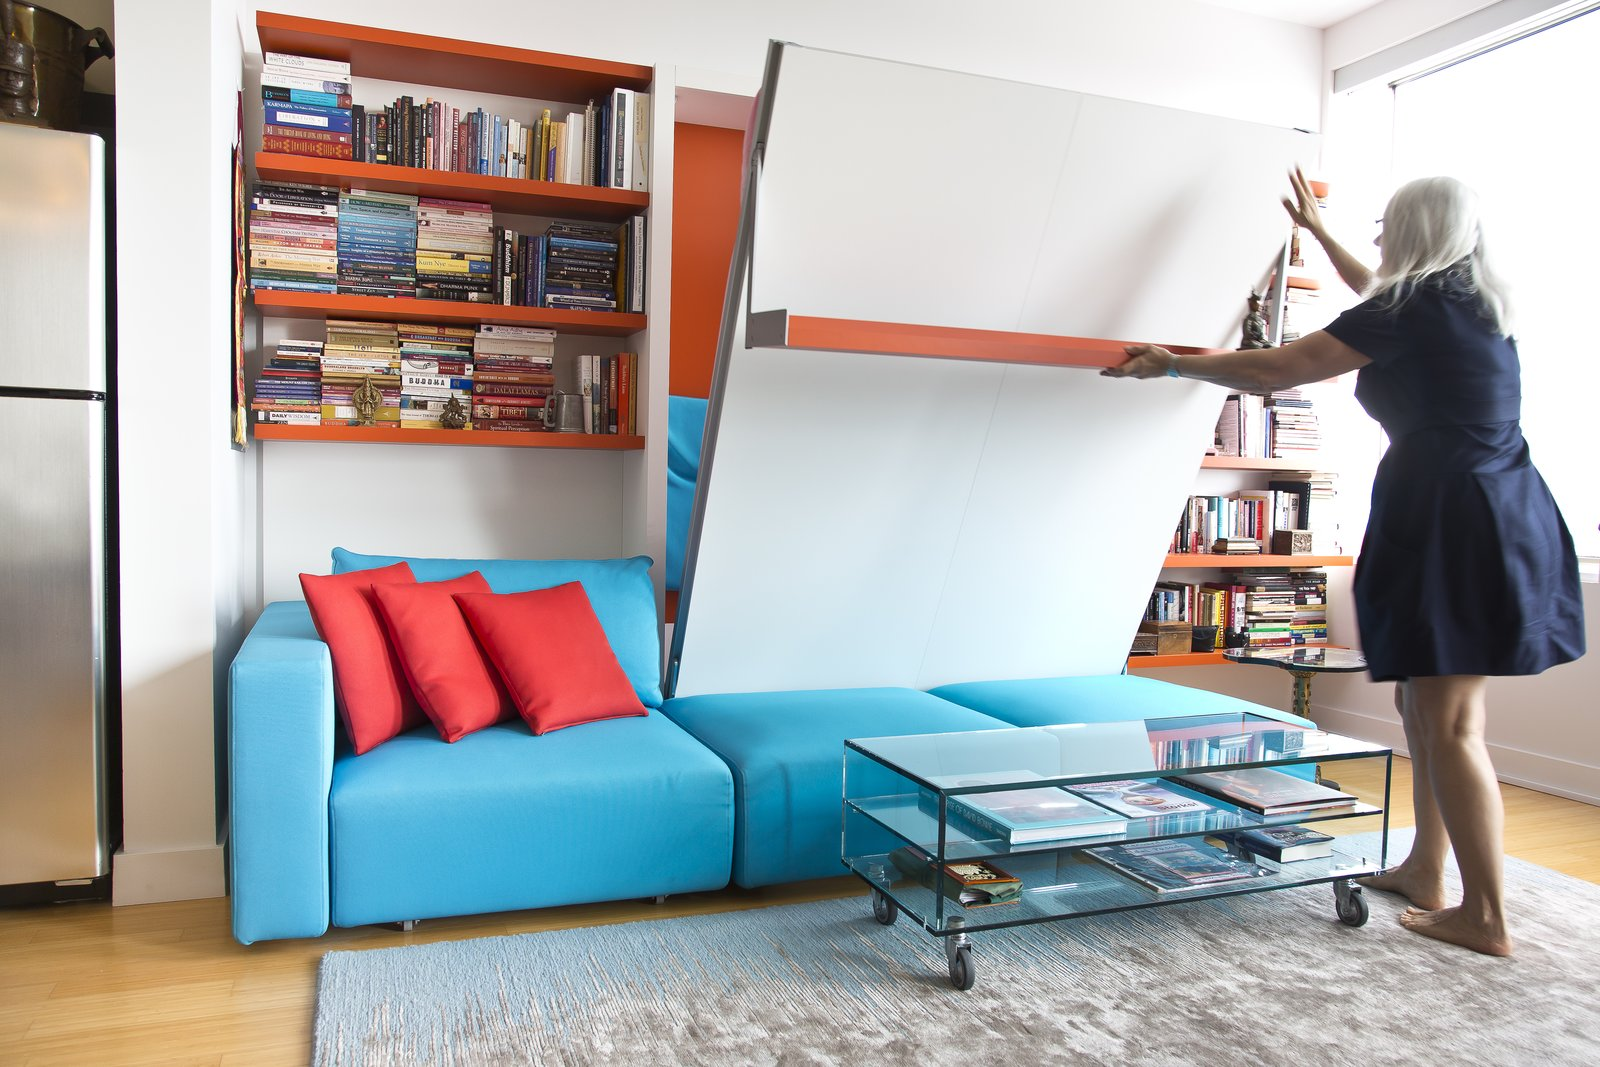 Annette demonstrates the ease of lowering the Swing, a queen-size wall bed with nine-foot sofa and sliding chaise. Here, it integrates with a shelving system, which continues the apartment's quirky motif of orange and blue.  Photo 4 of 6 in Two Film Industry Veterans Flip the Script With a Suburb-to-City Move